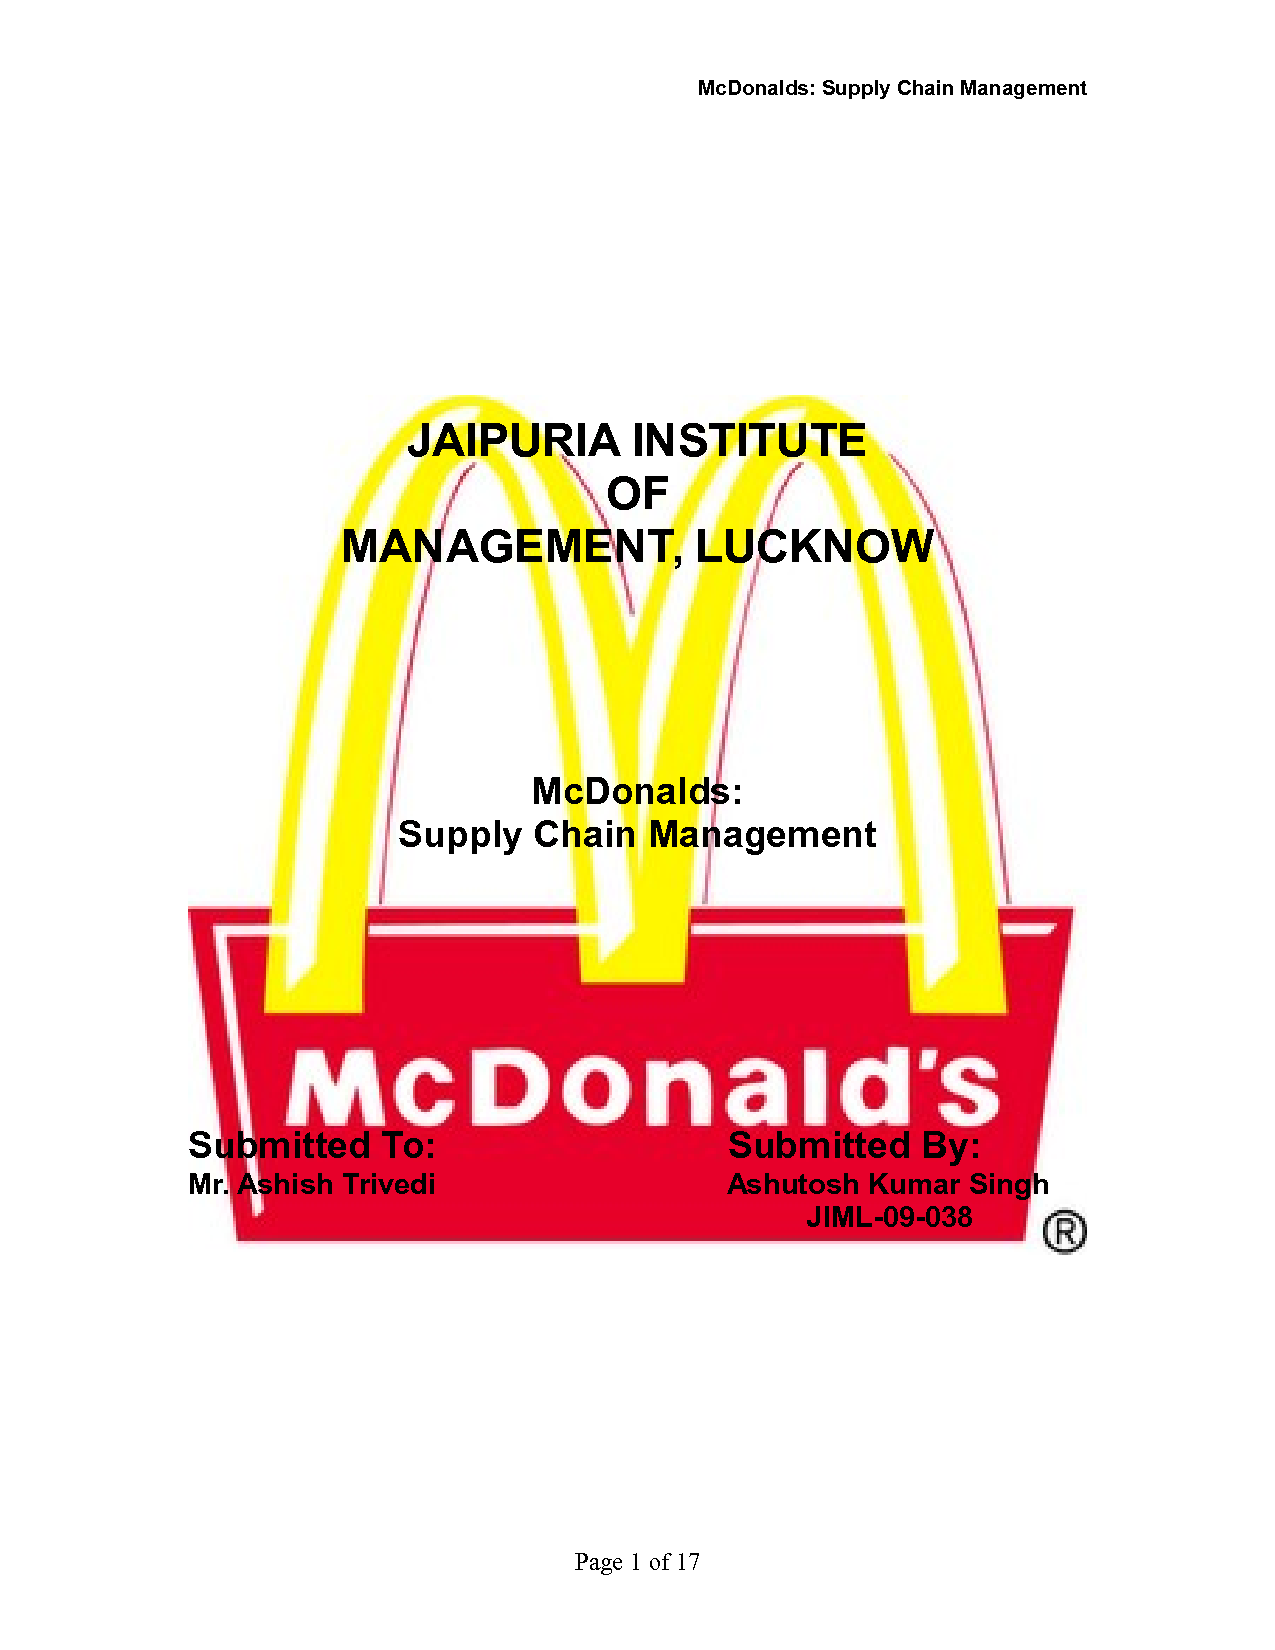 jit mcdonalds Examples of successful implementation of jit in service industry mcdonalds inc mcdonalds is a fine example of successful jit implementation in its process where it does not start the cooking (or heating) its orders until a customer has actually placed an order in the past, mcdonalds would pre-cook.